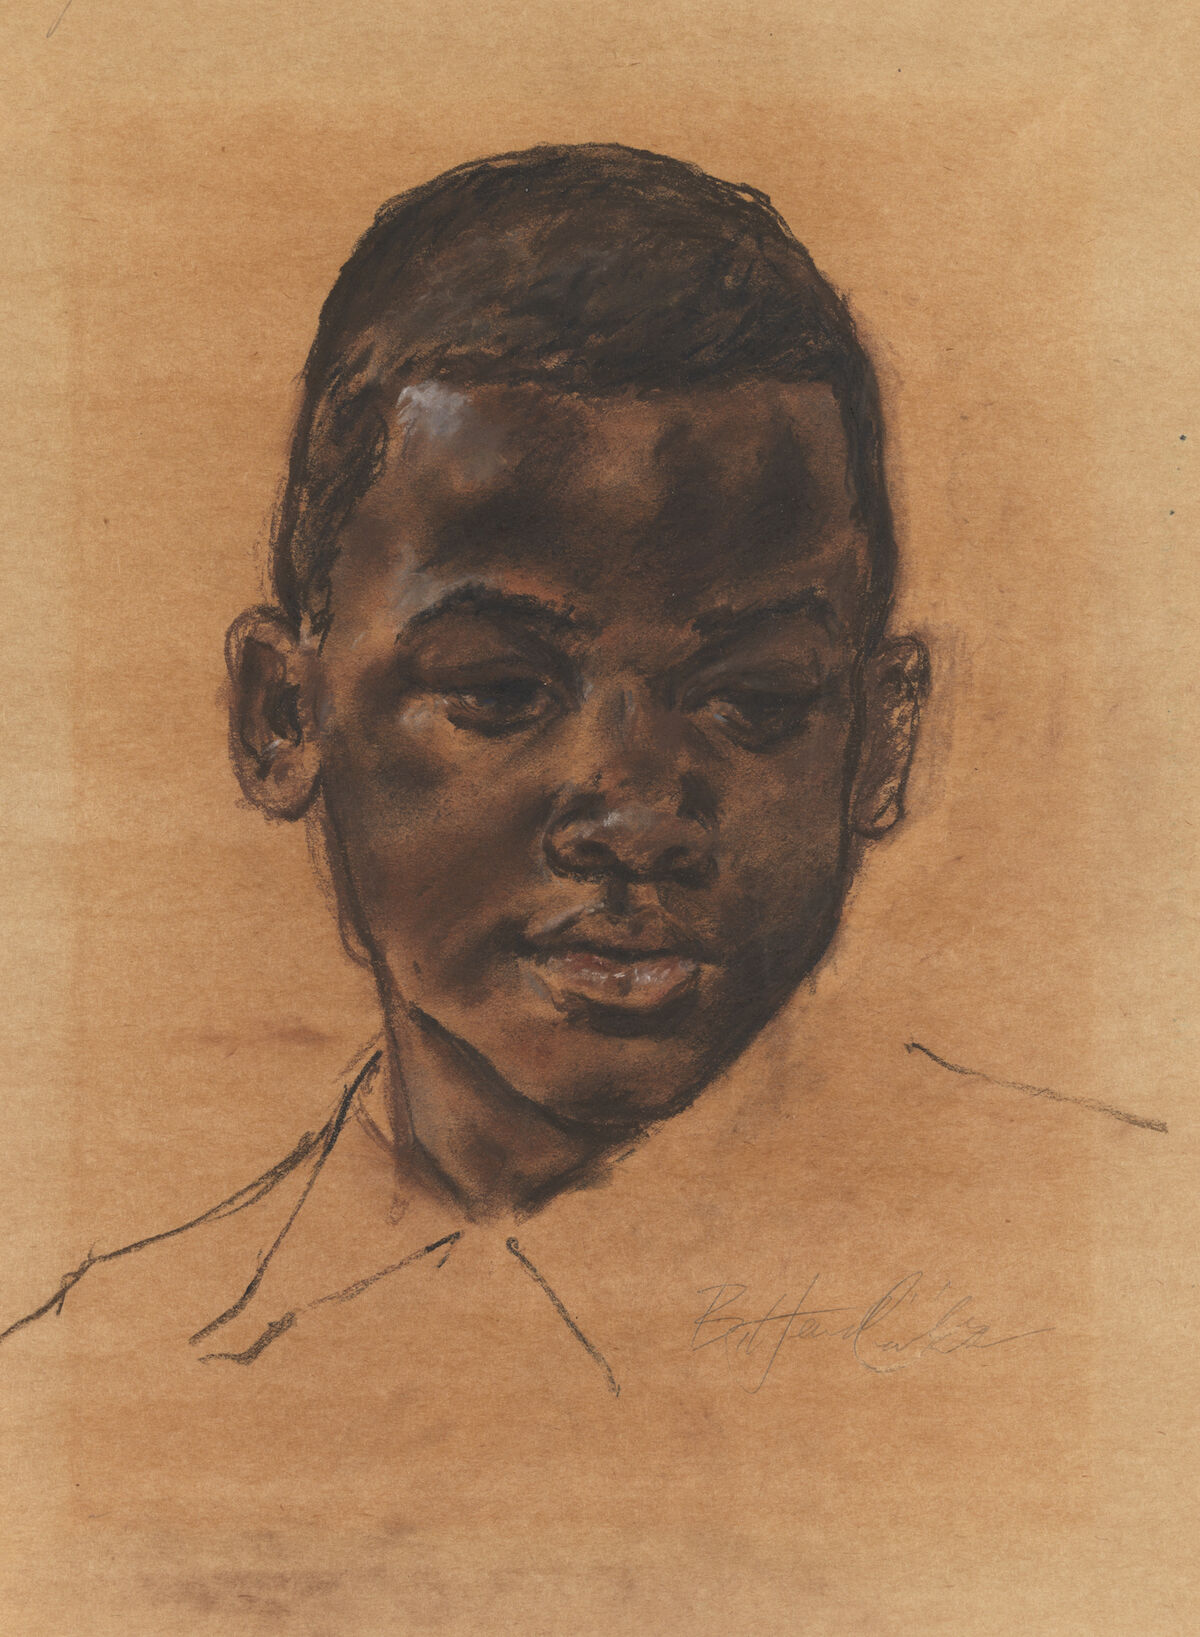 Barkley L. Hendricks, [Head of a boy], n.d., charcoal and pastel on paper. Courtesy the Pennsylvania Academy of Fine Arts.